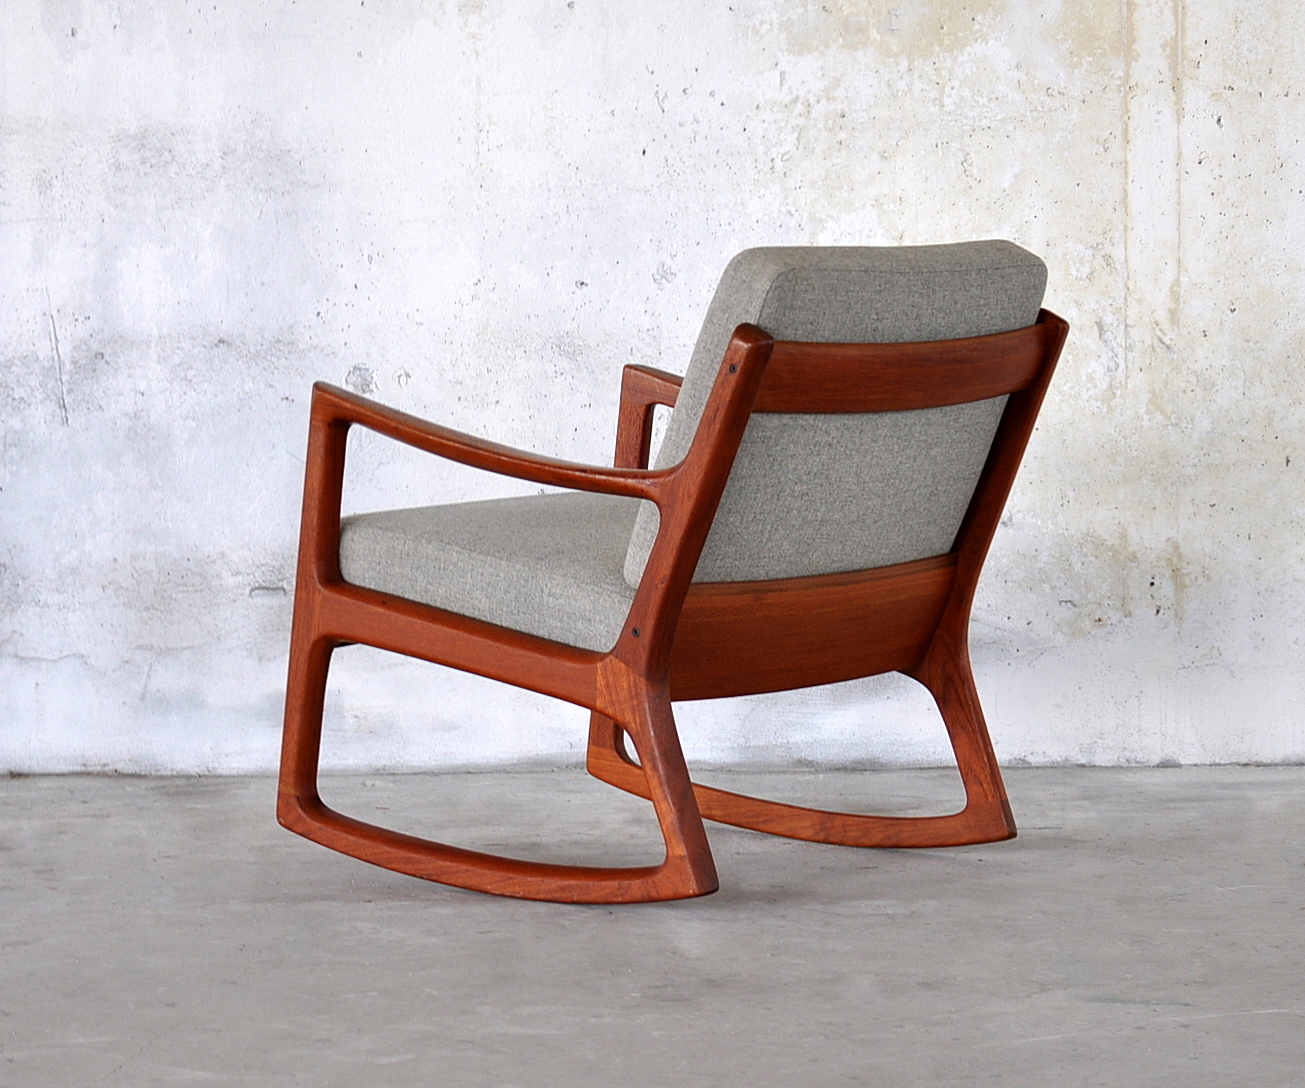 Rocking Chair Inspiration furniture. modern rocking chair inspiring ... QUJMIHZ